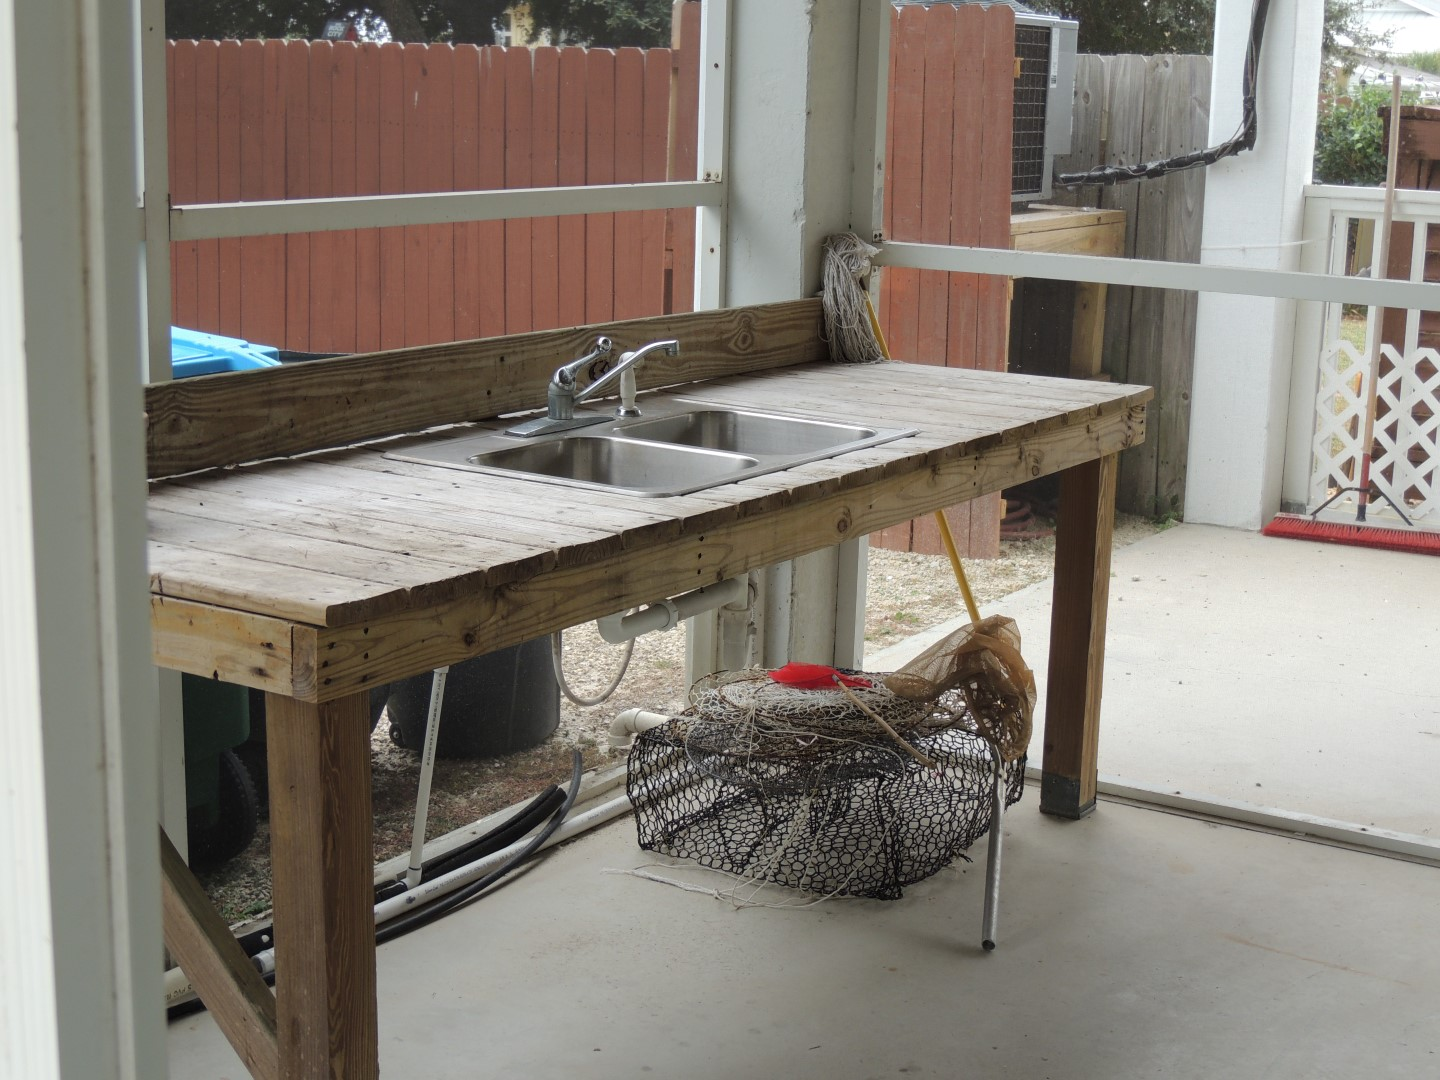 Three Palms Screened in Fish Cleaning Room-Double Sink and Cutting Board-Crab Trap-9